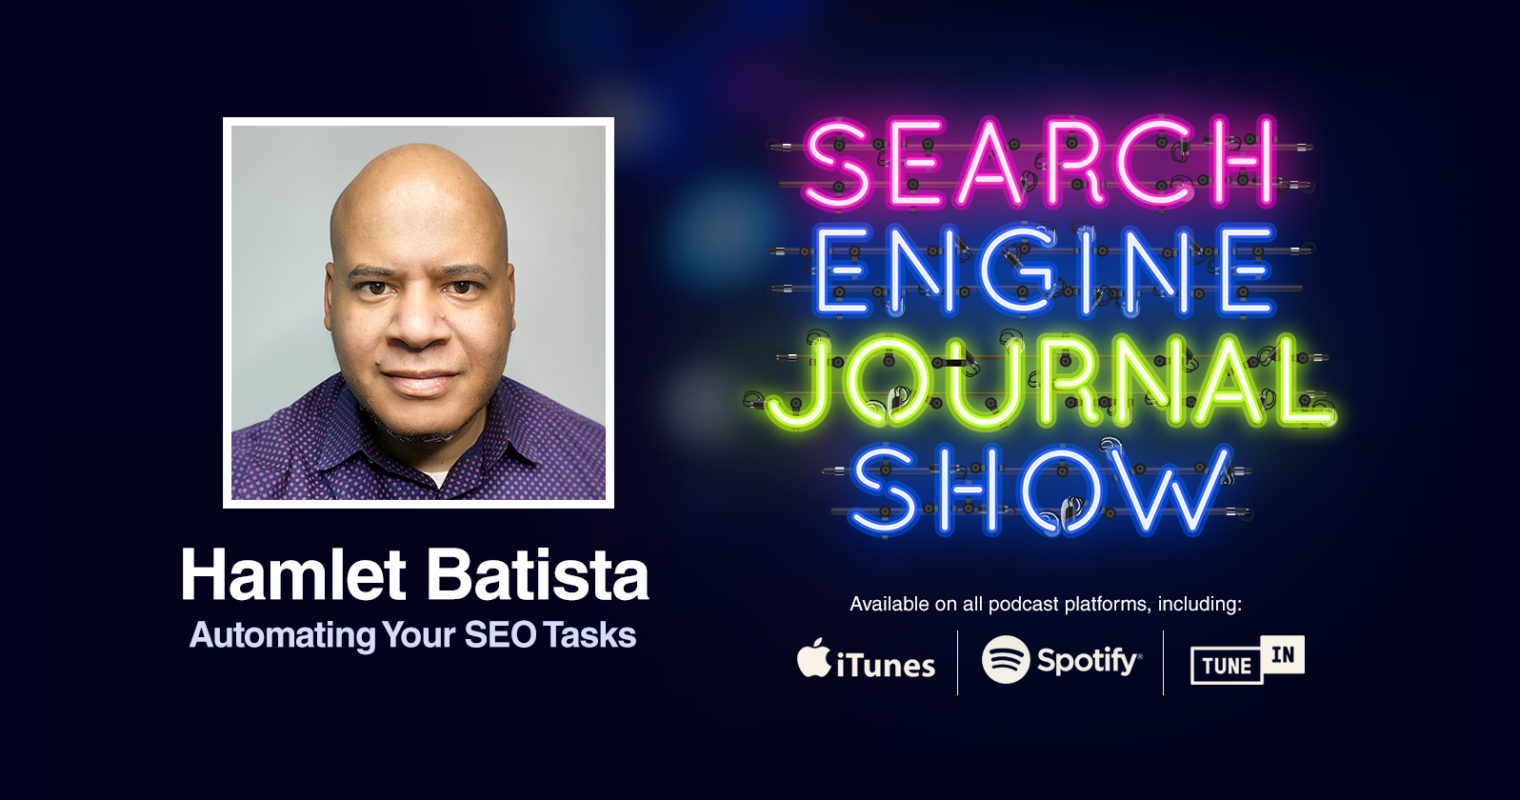 Automating Your SEO Tasks with Hamlet Batista [PODCAST]